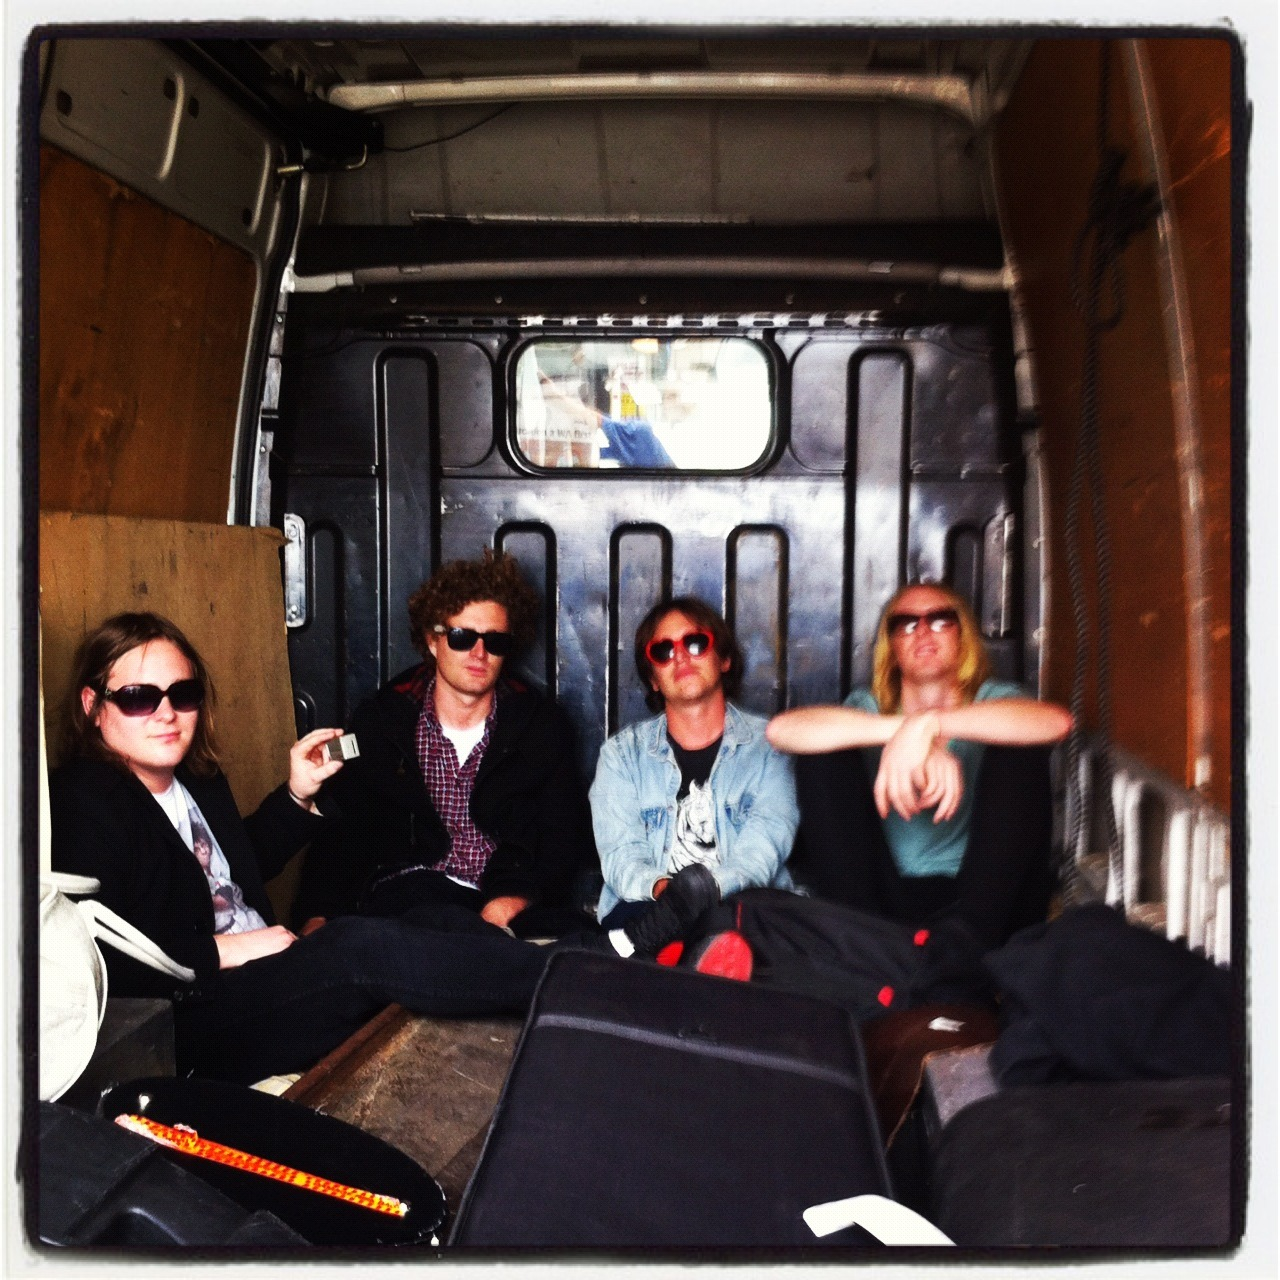 Sup mofos? Time to hit the road again to see if we can play the songs from CONTROLLER live (and to see how well everyone has learned the words). We don't travel anywhere by van anymore so I thought i'd post this photo as a meditation on how far we've come. I sort of miss it. Nic doesn't miss it. Peace